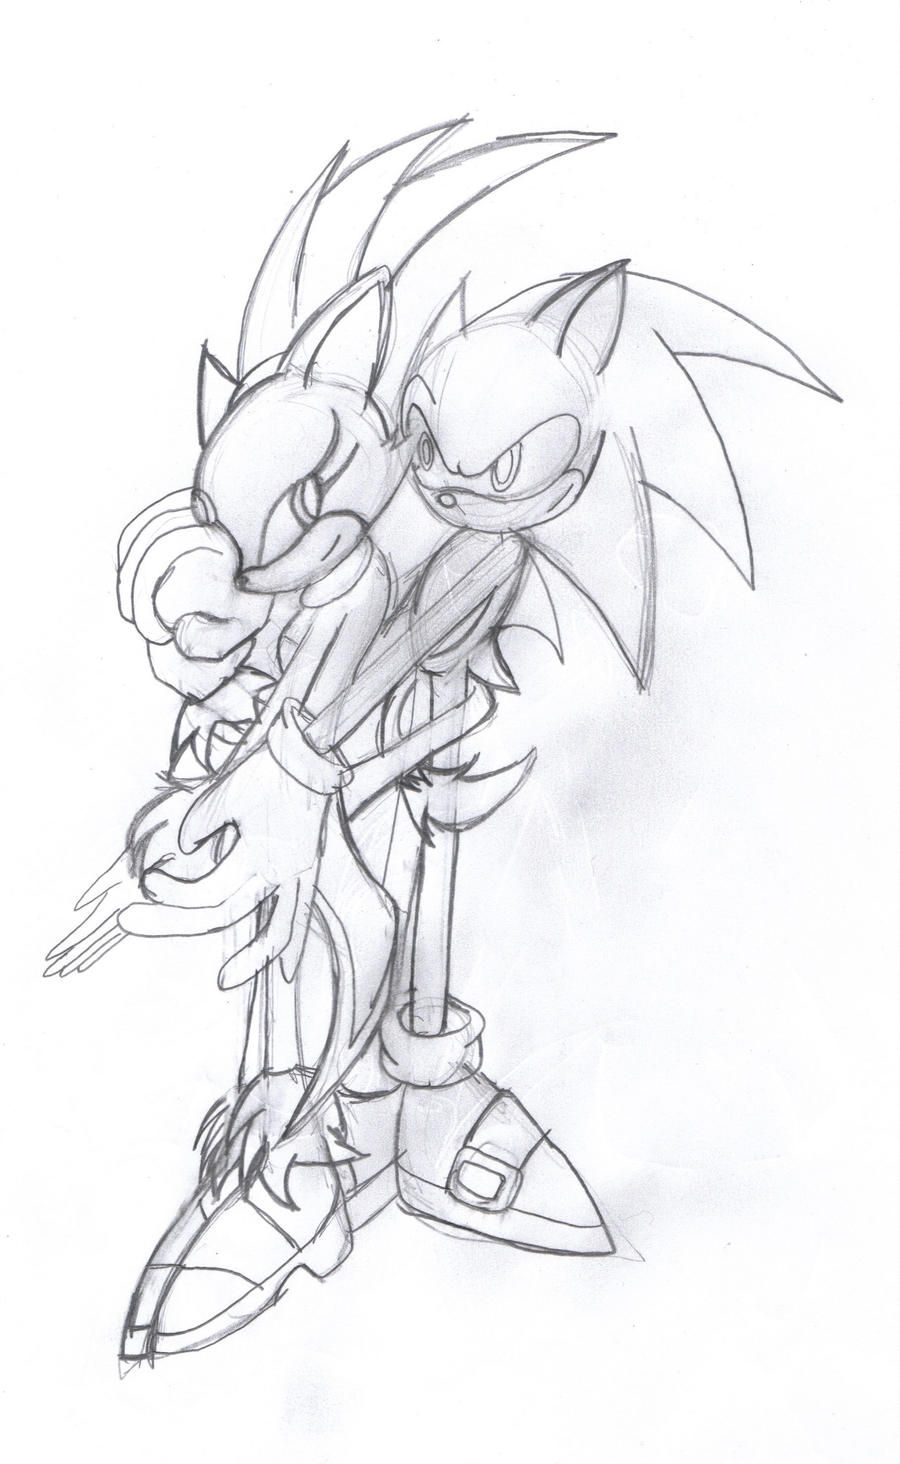 sonic and blaze loving embrace by mauevig on deviantart